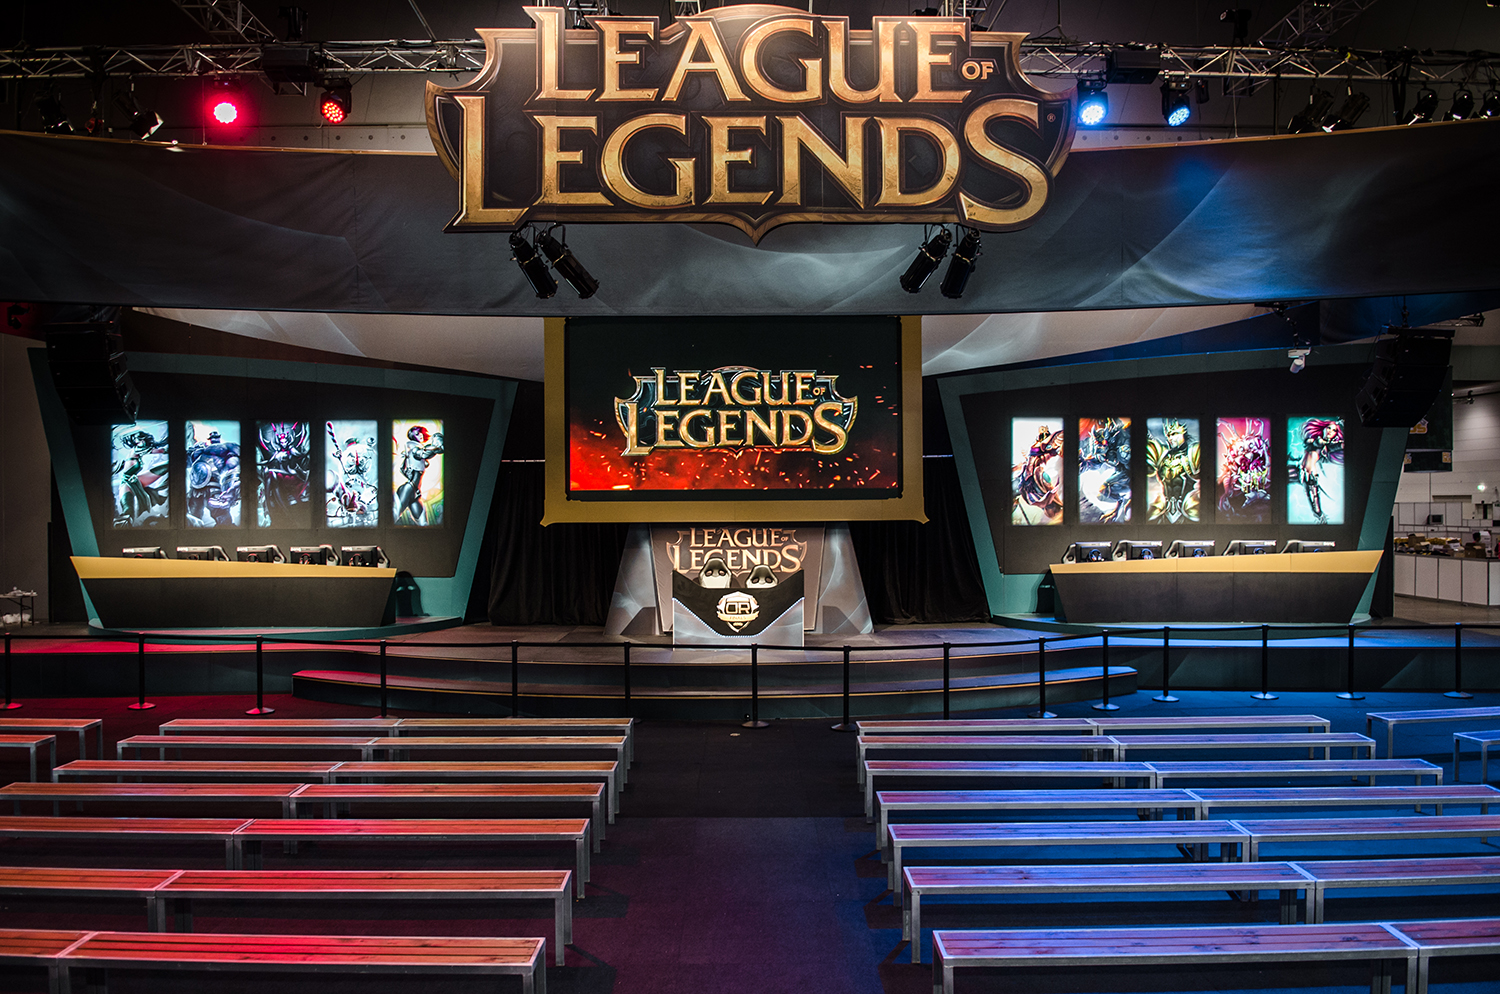 League of Legends 2014 Oceanic Regionals